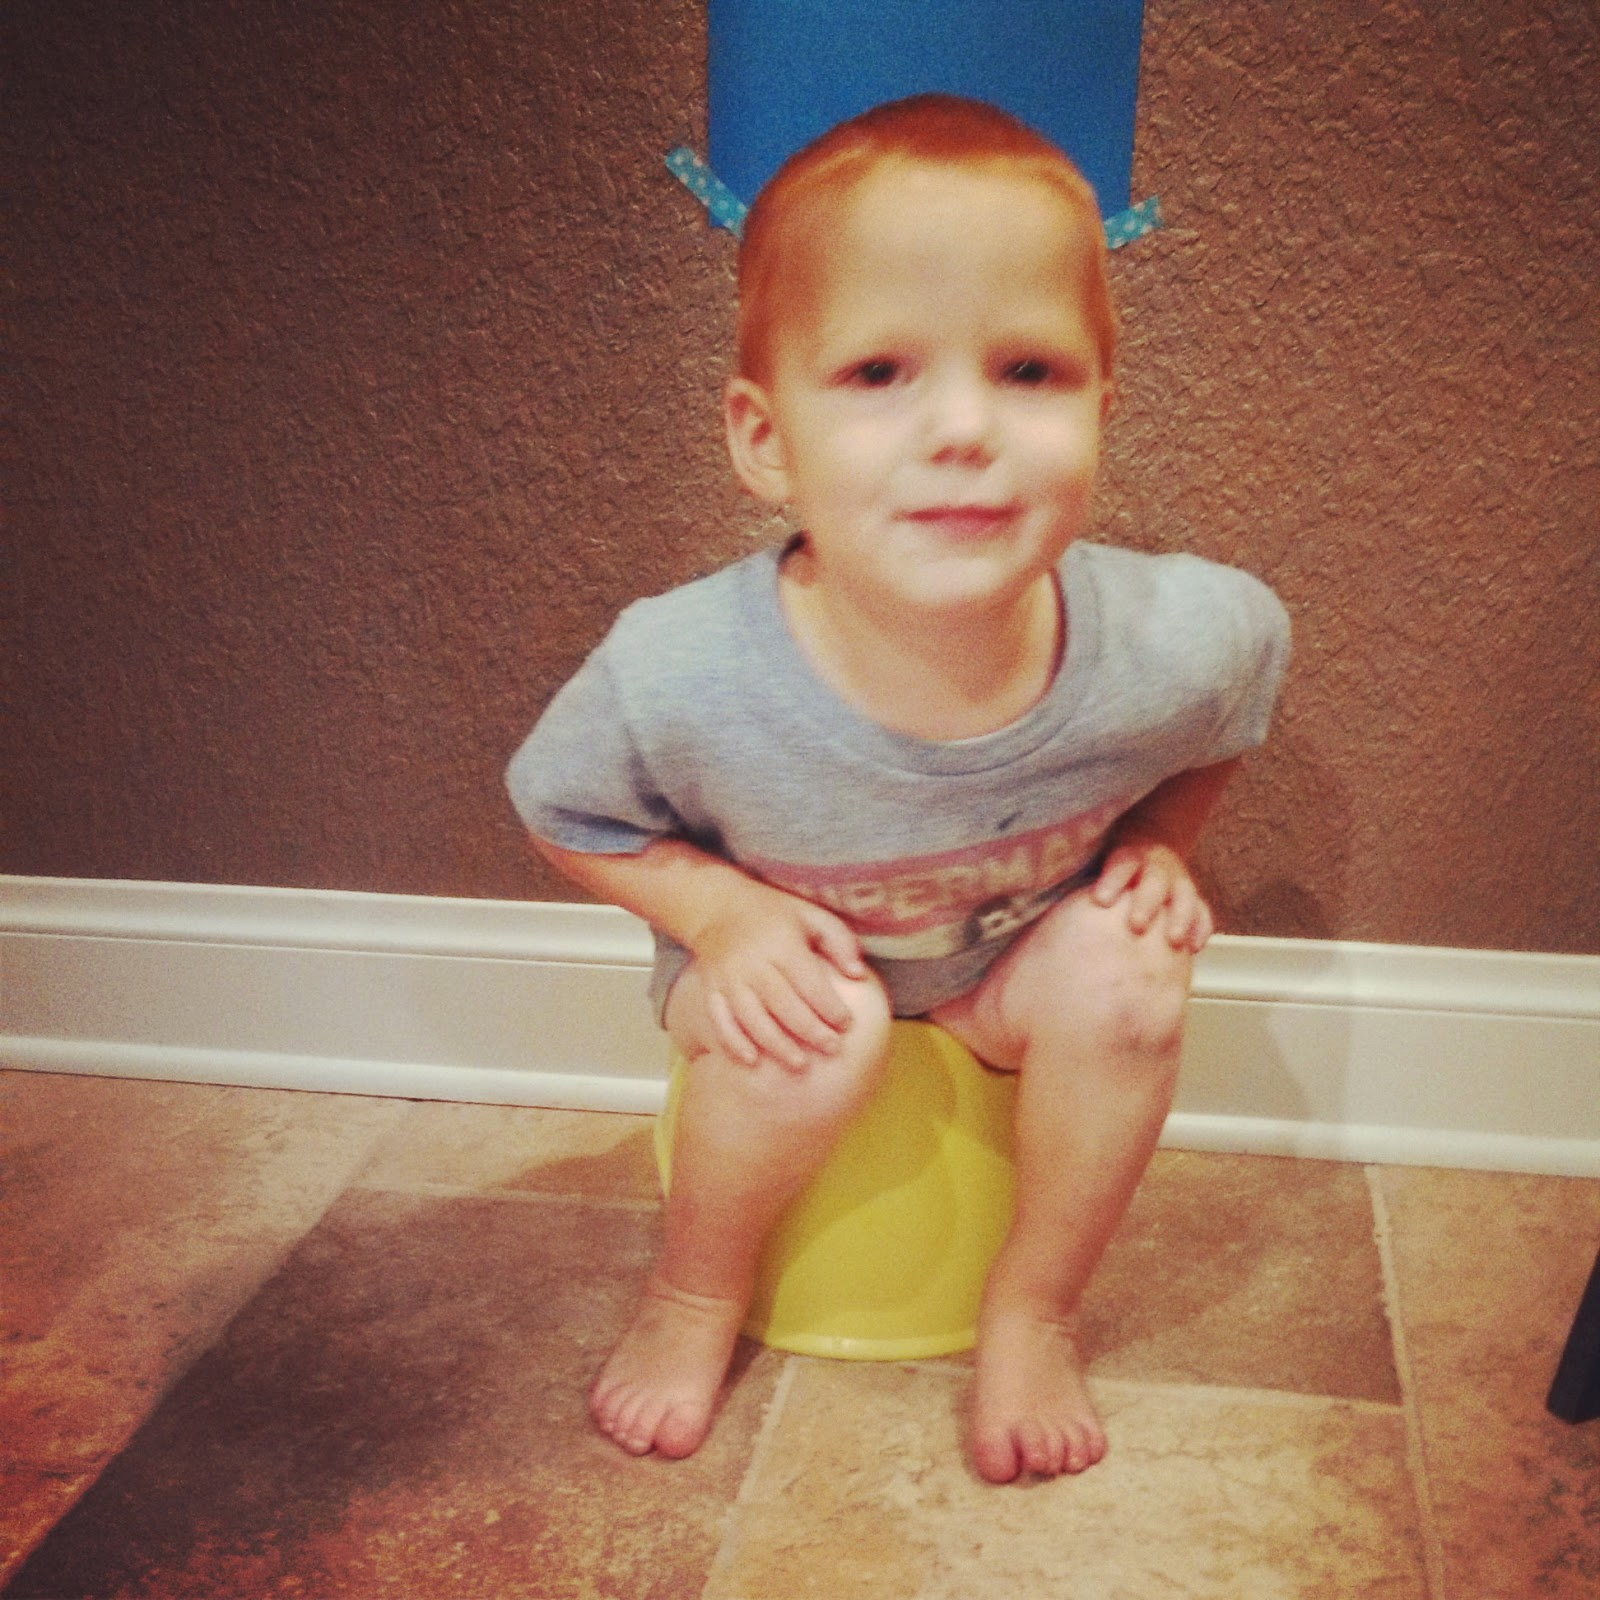 how to potty train when child refuses